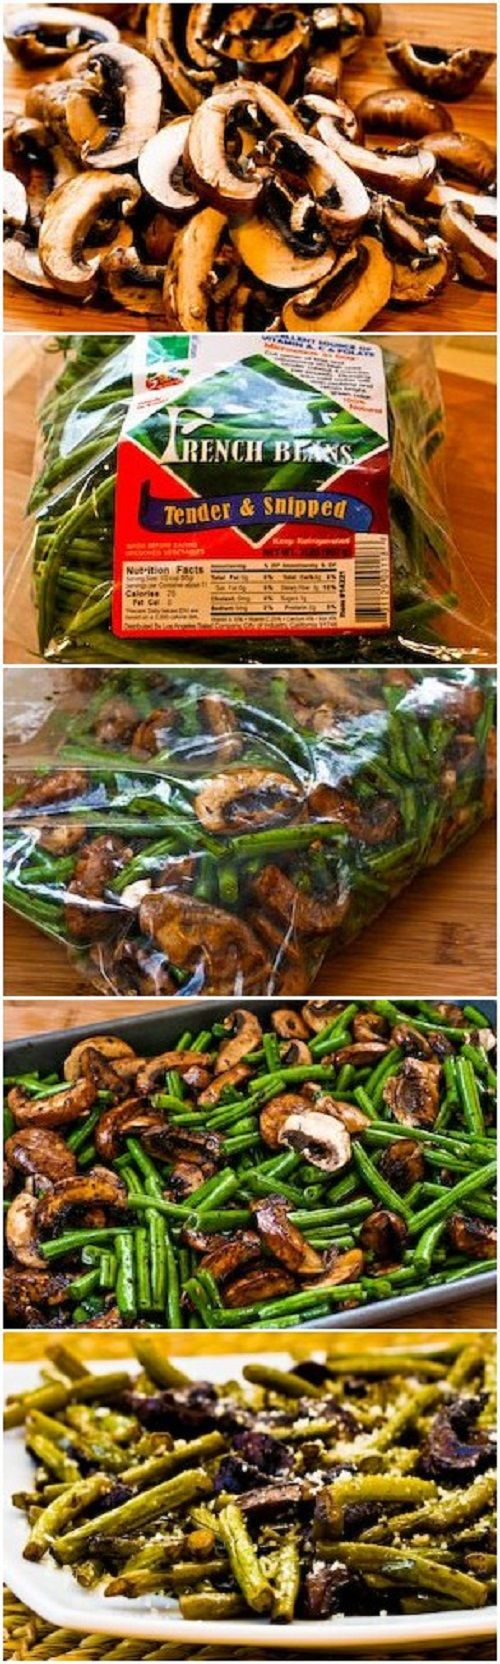 Best Recipes, #19 Roasted Green Beans with Mushrooms, Balsamic, and Parmesan